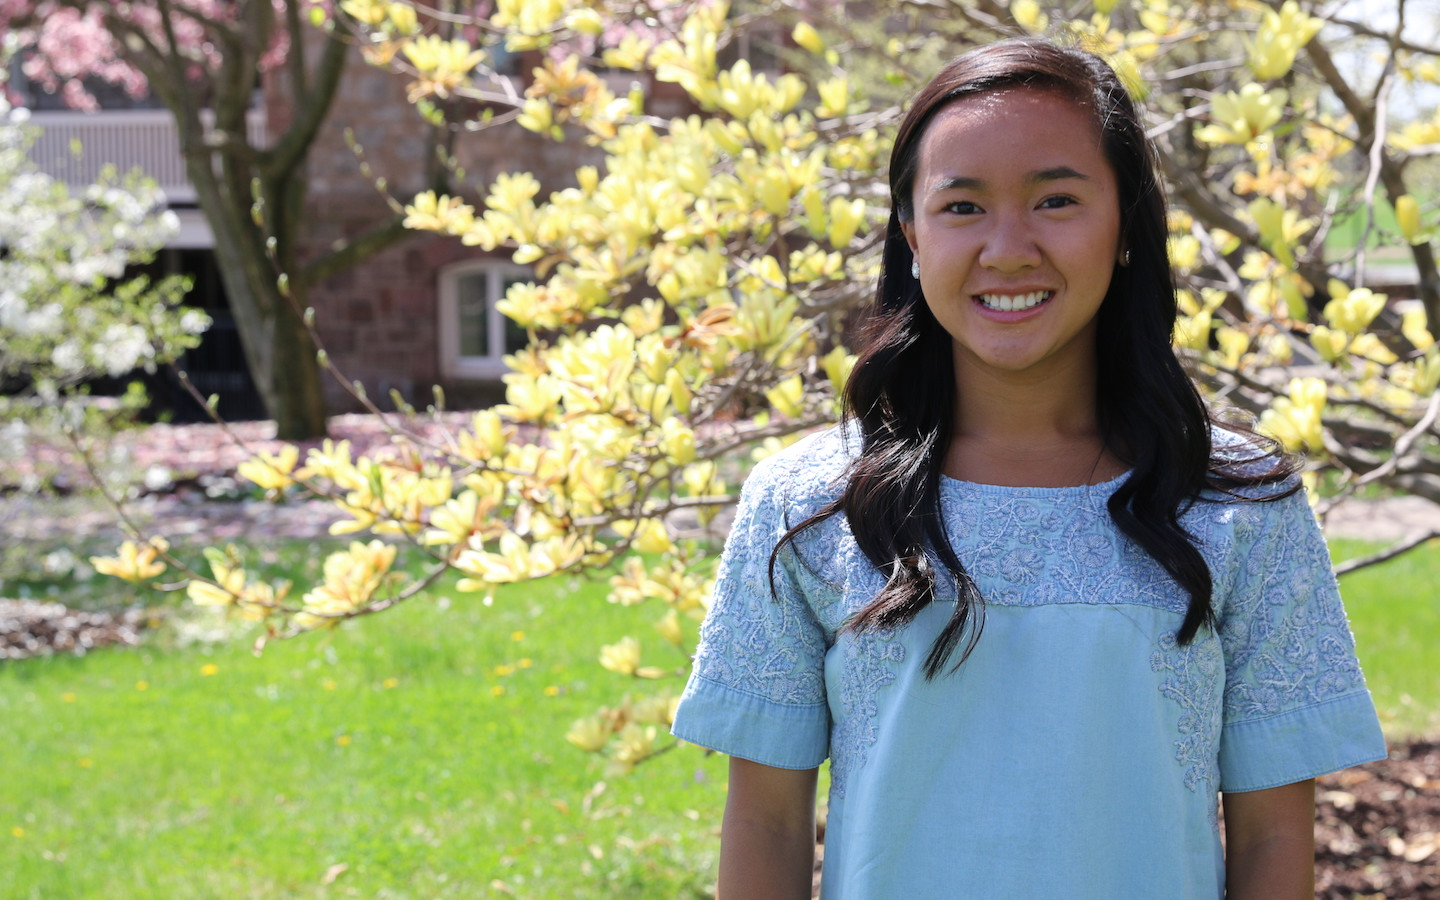 Danielle Nguyen Mount St. Mary's University Class of 2015